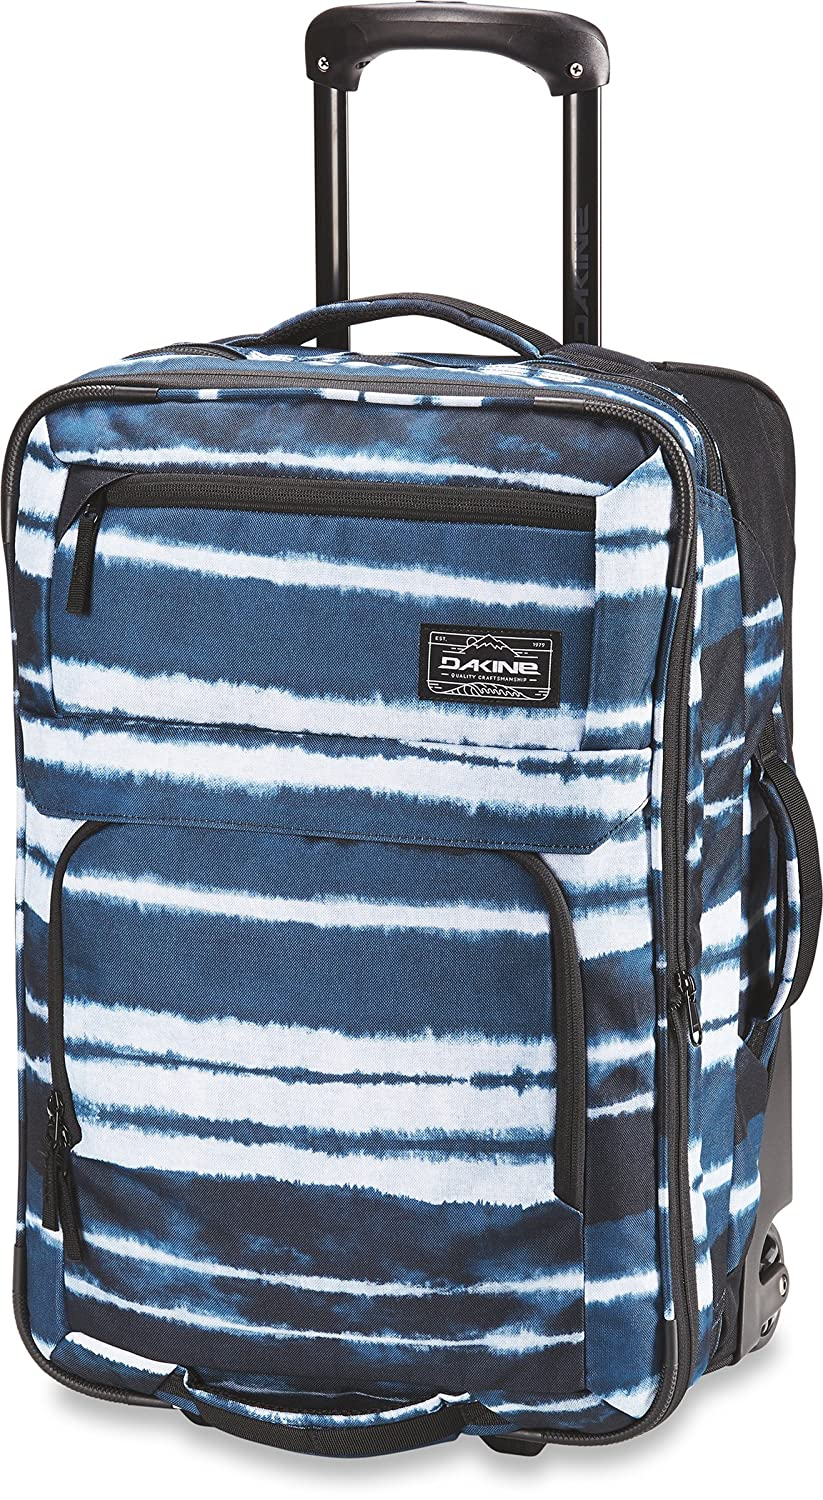 Amazon.com  Dakine Status Roller Luggage Bag  Sports   Outdoors 8d15b75018a43